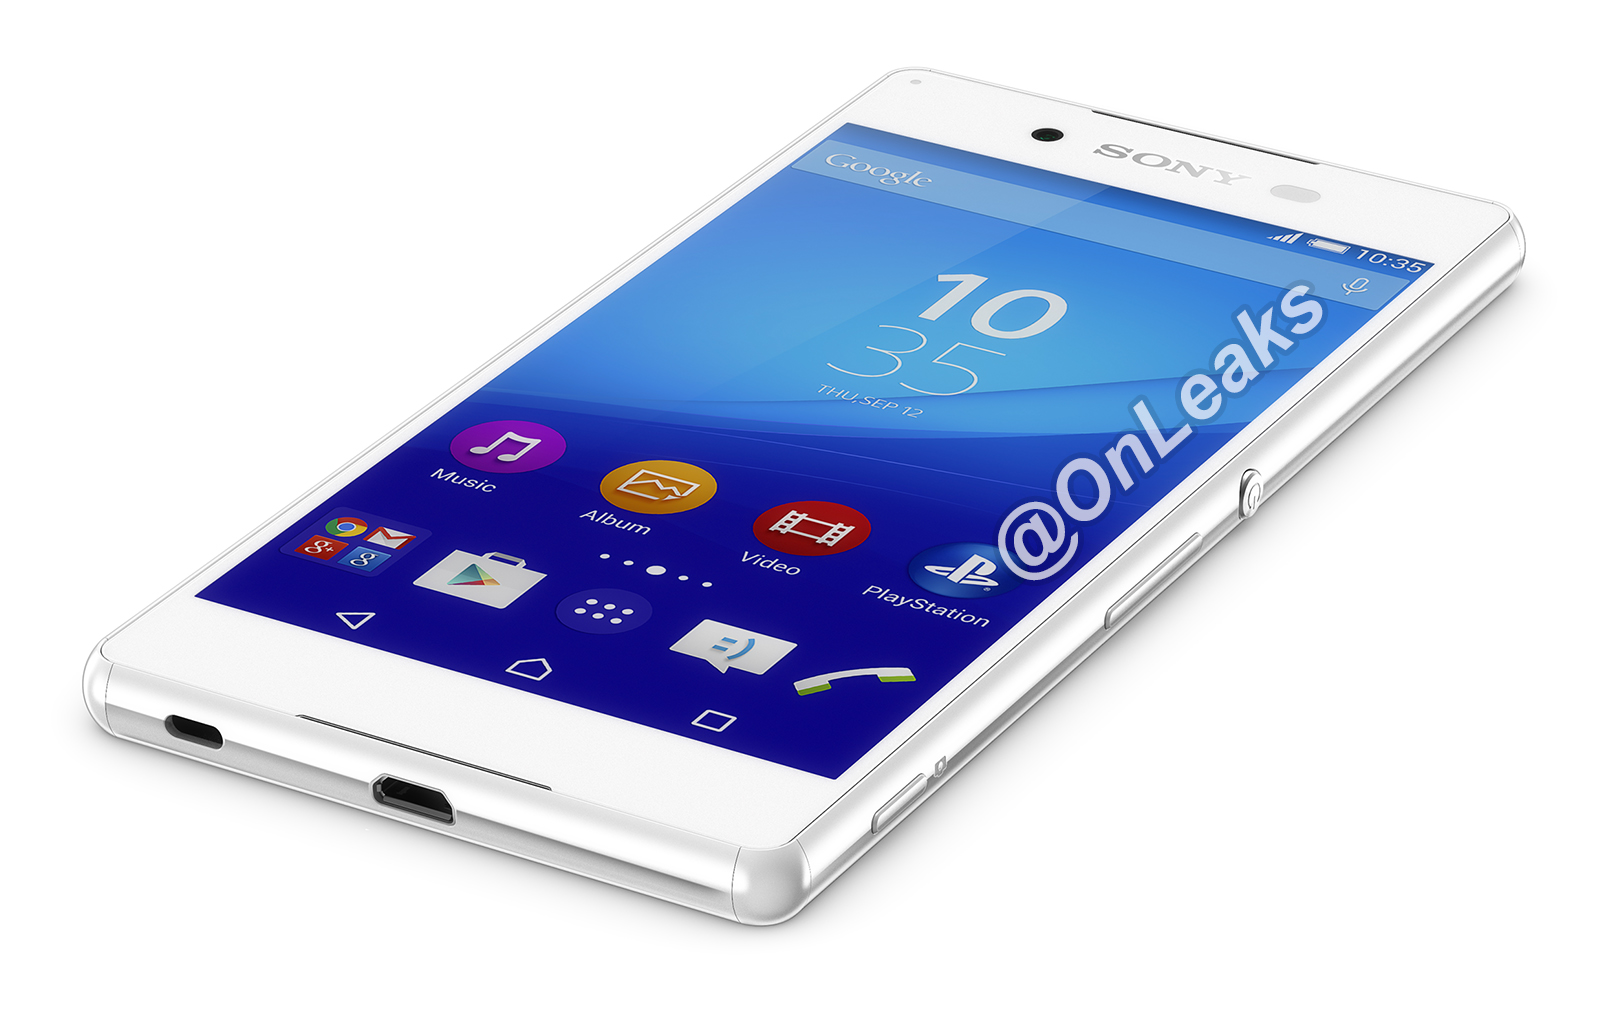 Not very long after the initial leaks about the Sony Xperia Z4 , we